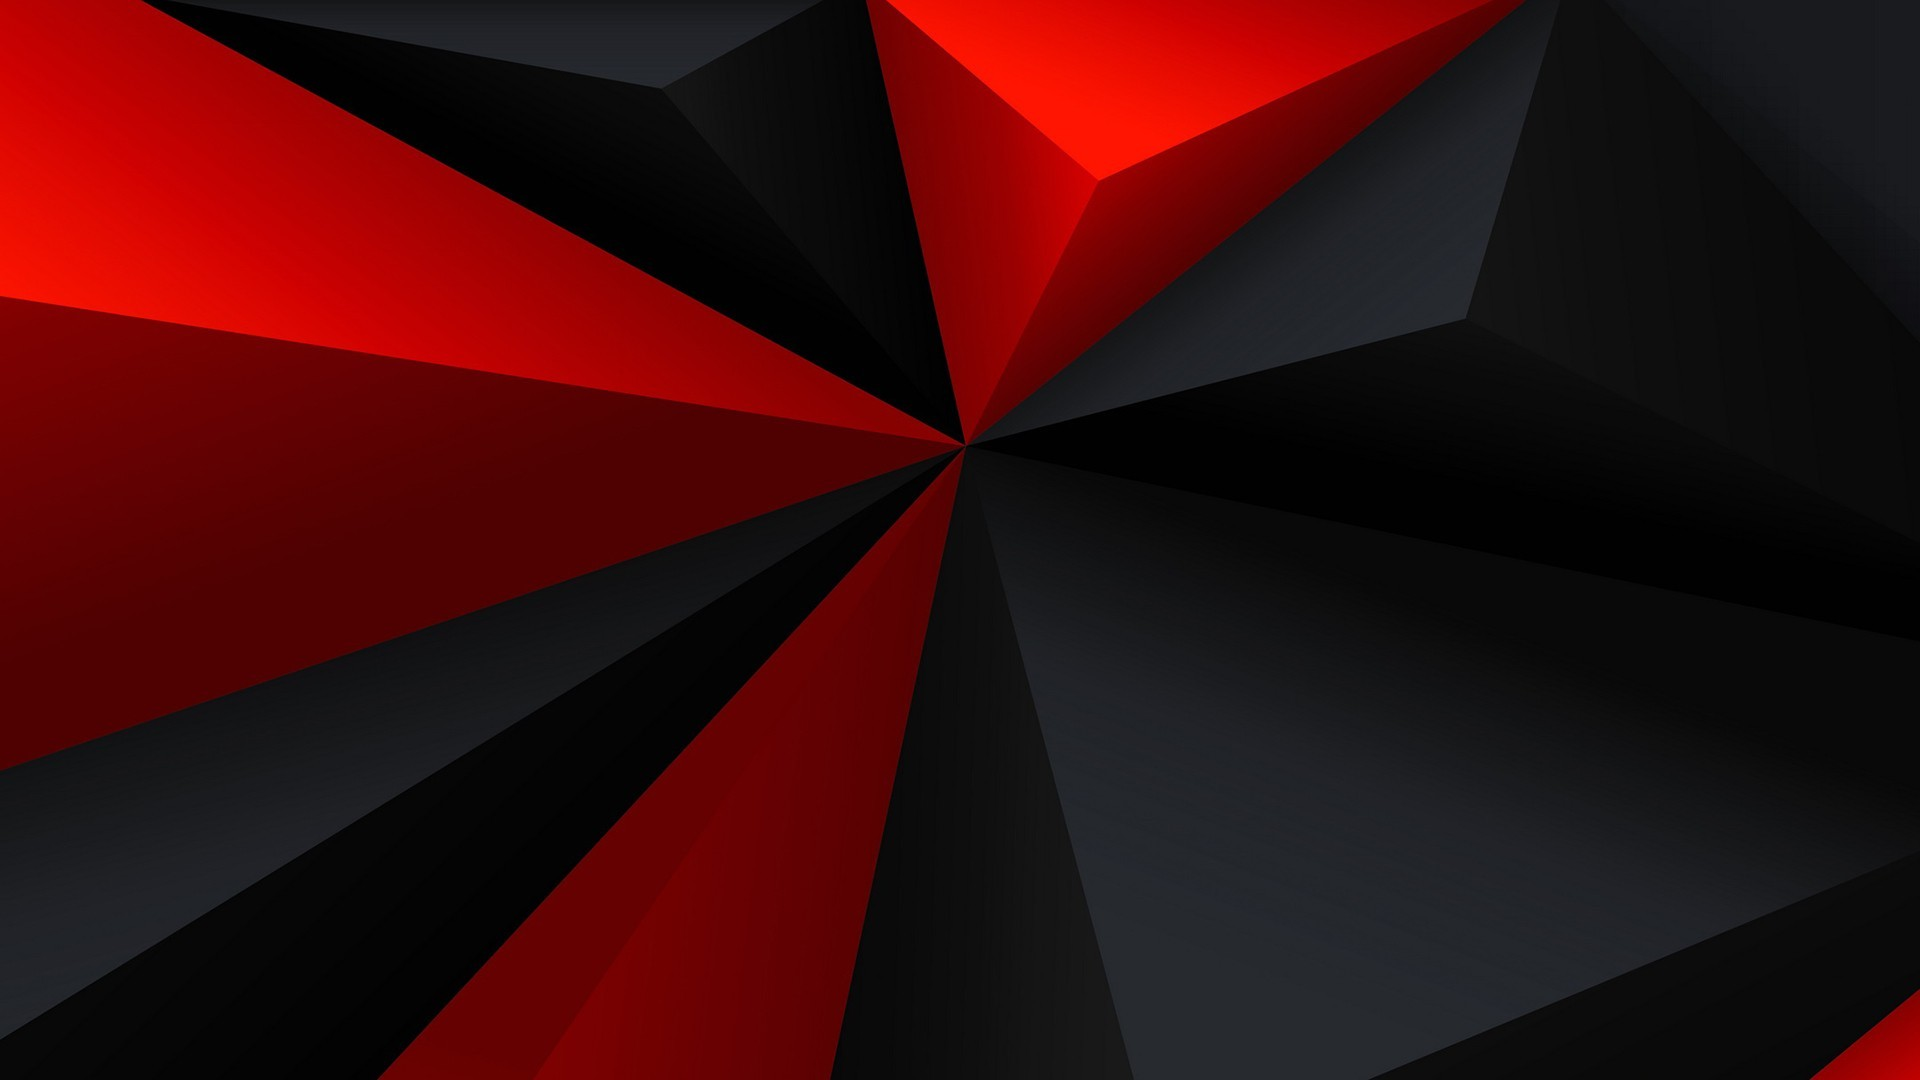 General digital art minimalism low poly geometry triangle red  black gray abstract